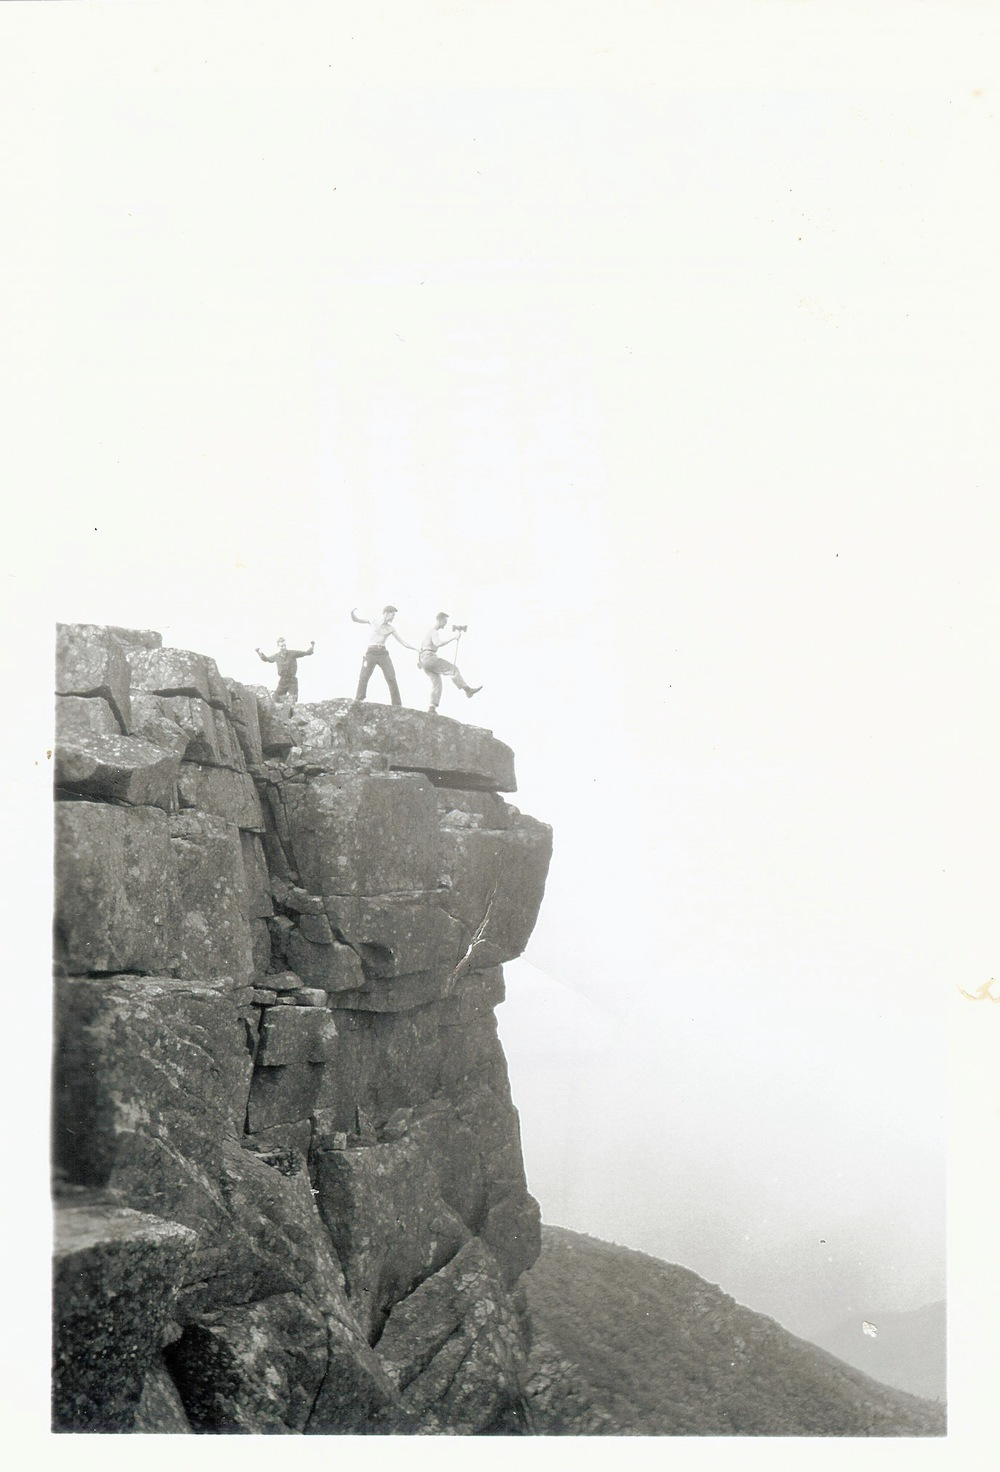 1940's - Crew on Bondcliffs